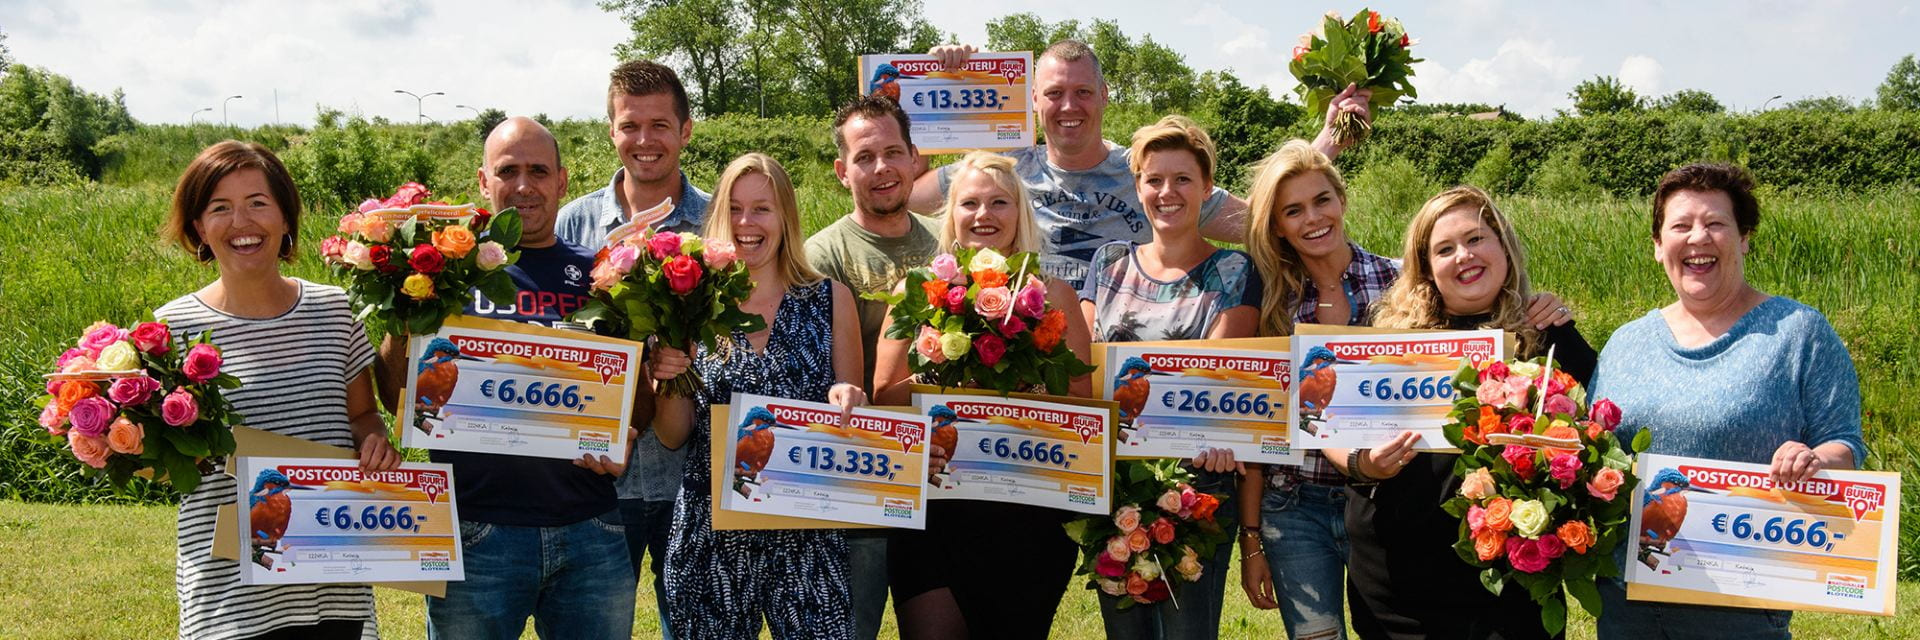 Winners of the National Postcode Lottery, courtesy of Novamedia and Roy Beusker.